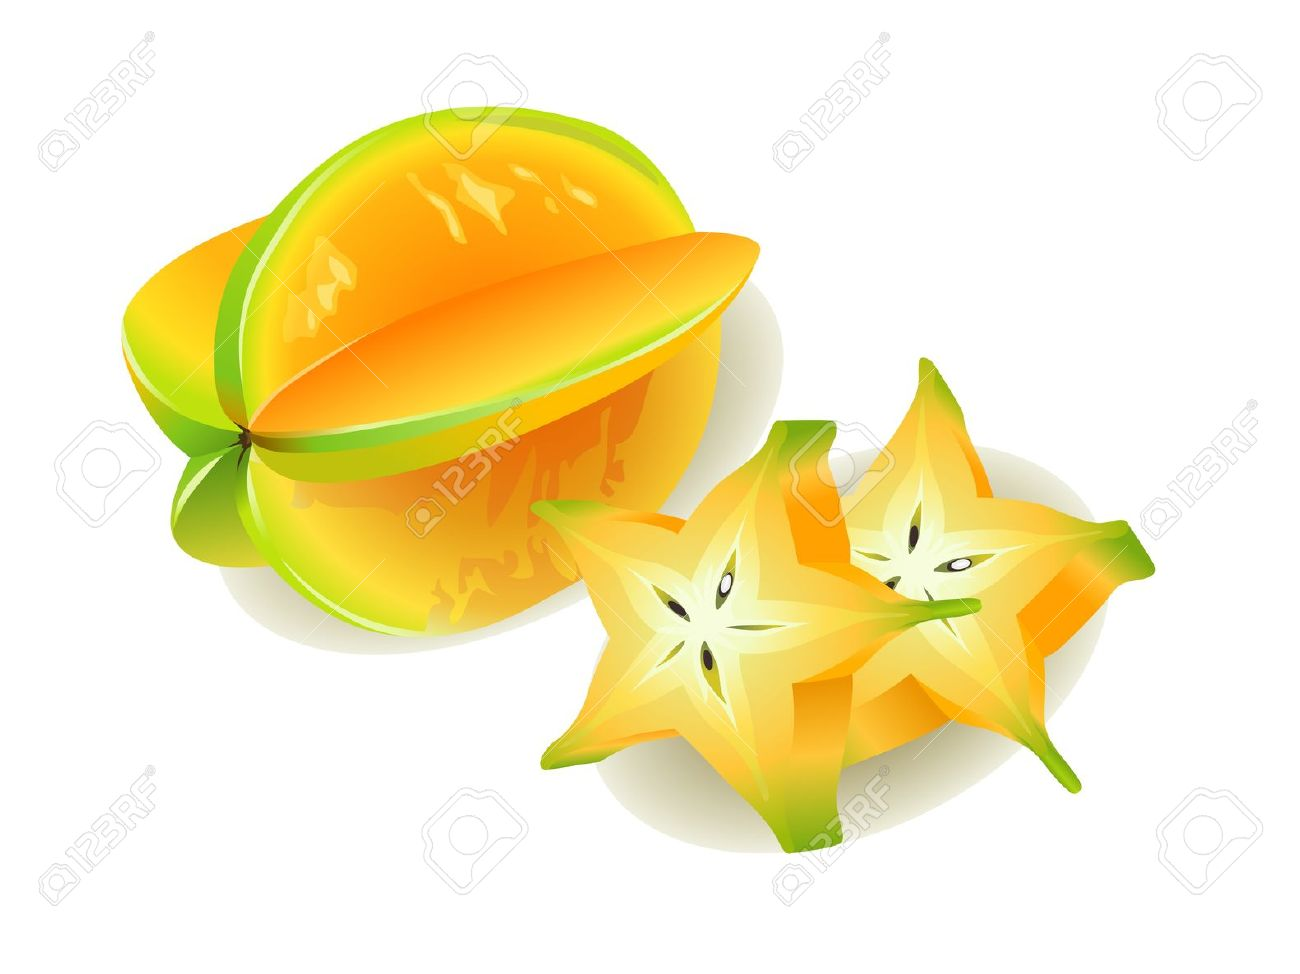 Star fruit clipart free.